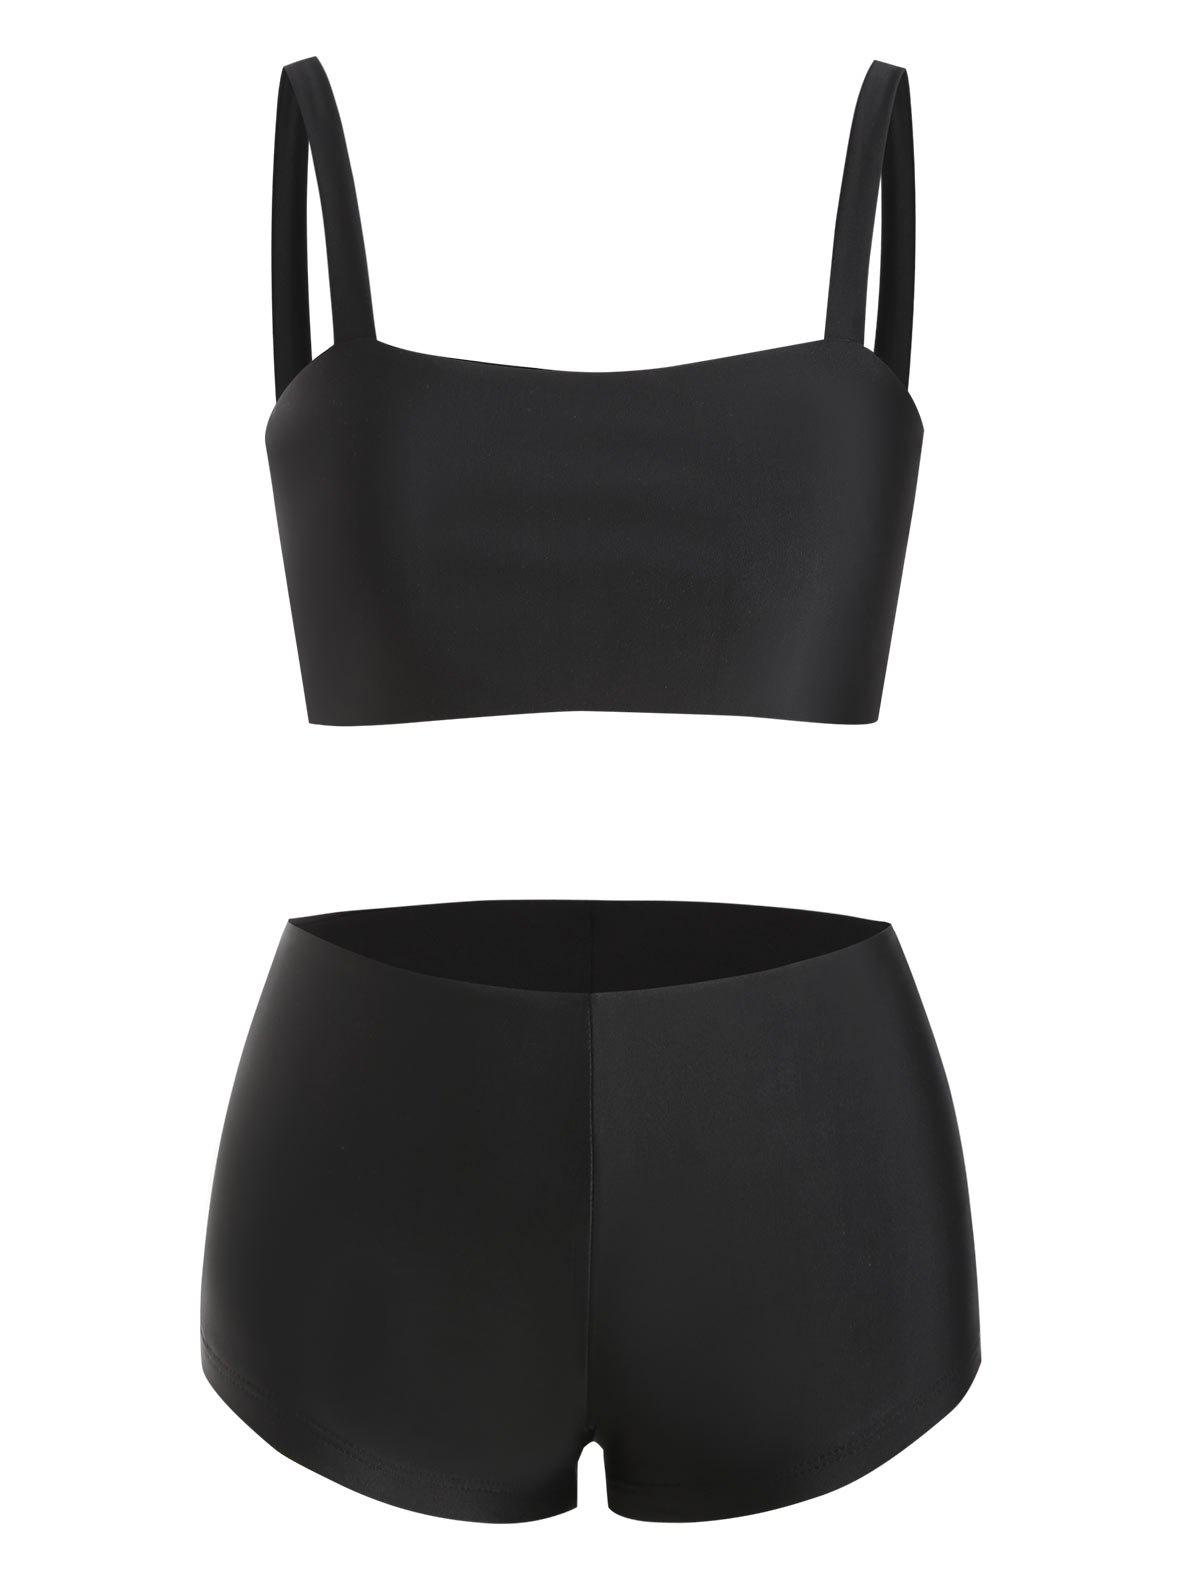 Buy Basic Bra and Boyshorts Bikini Set